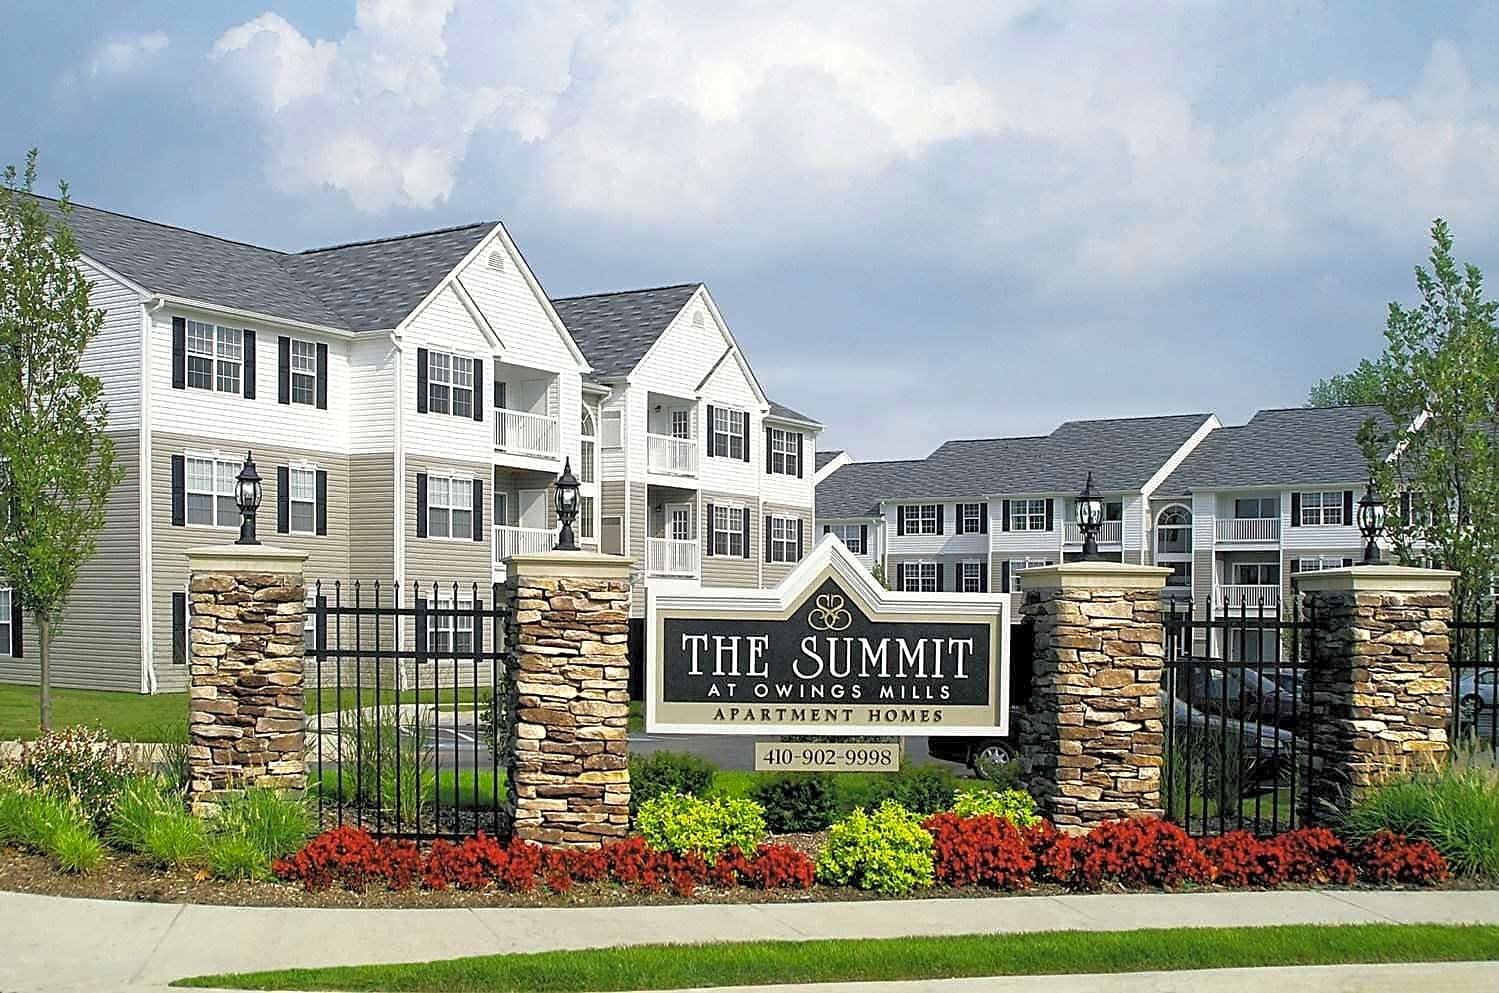 Apartments Near McDaniel Summit at Owings Mills for McDaniel College Students in Westminster, MD